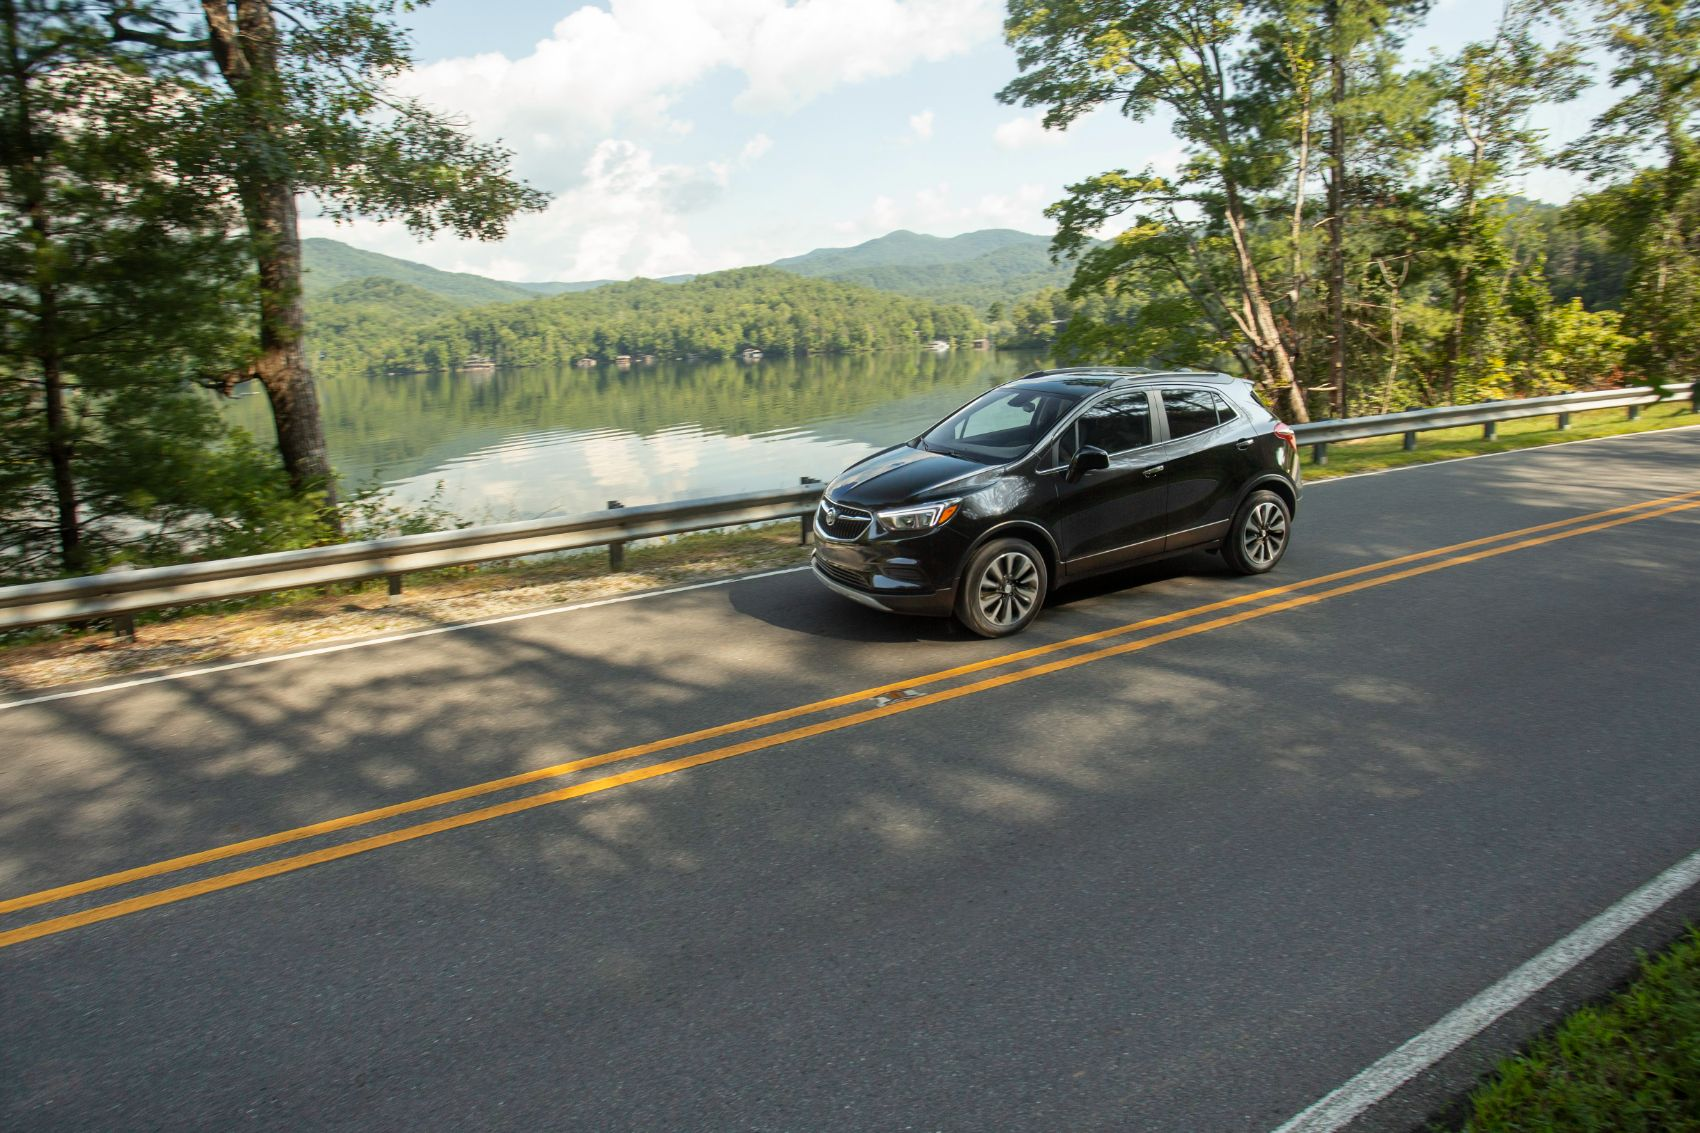 2022 Buick Lineup Overview: Refreshed Styling & New Features for Enclave, Envision & Encore